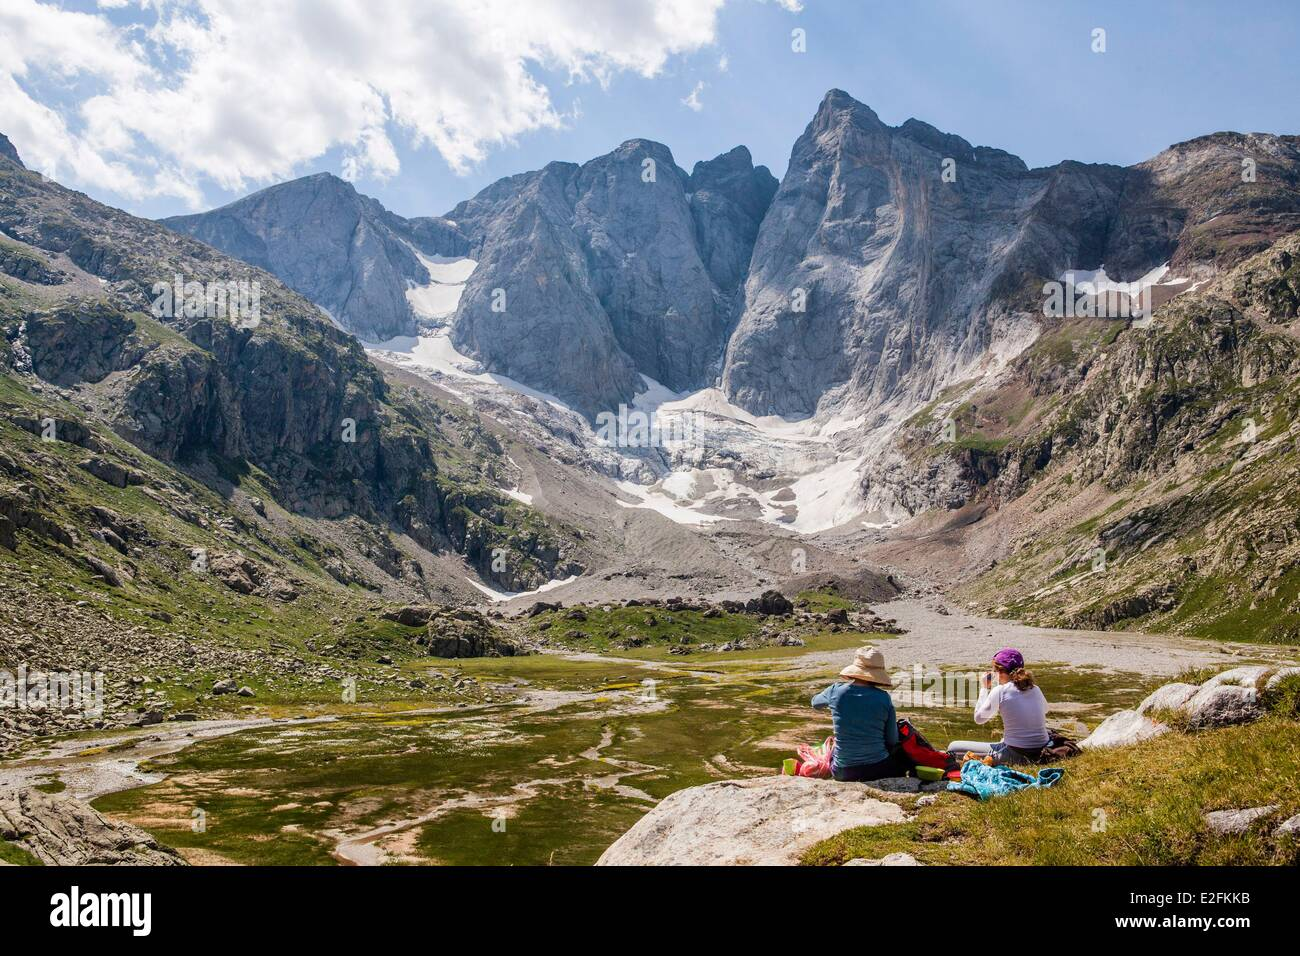 France Hautes Pyrenees Pyrenees National Park GR10 grande randonnee footpath in the Gaube valley north face of the Stock Photo